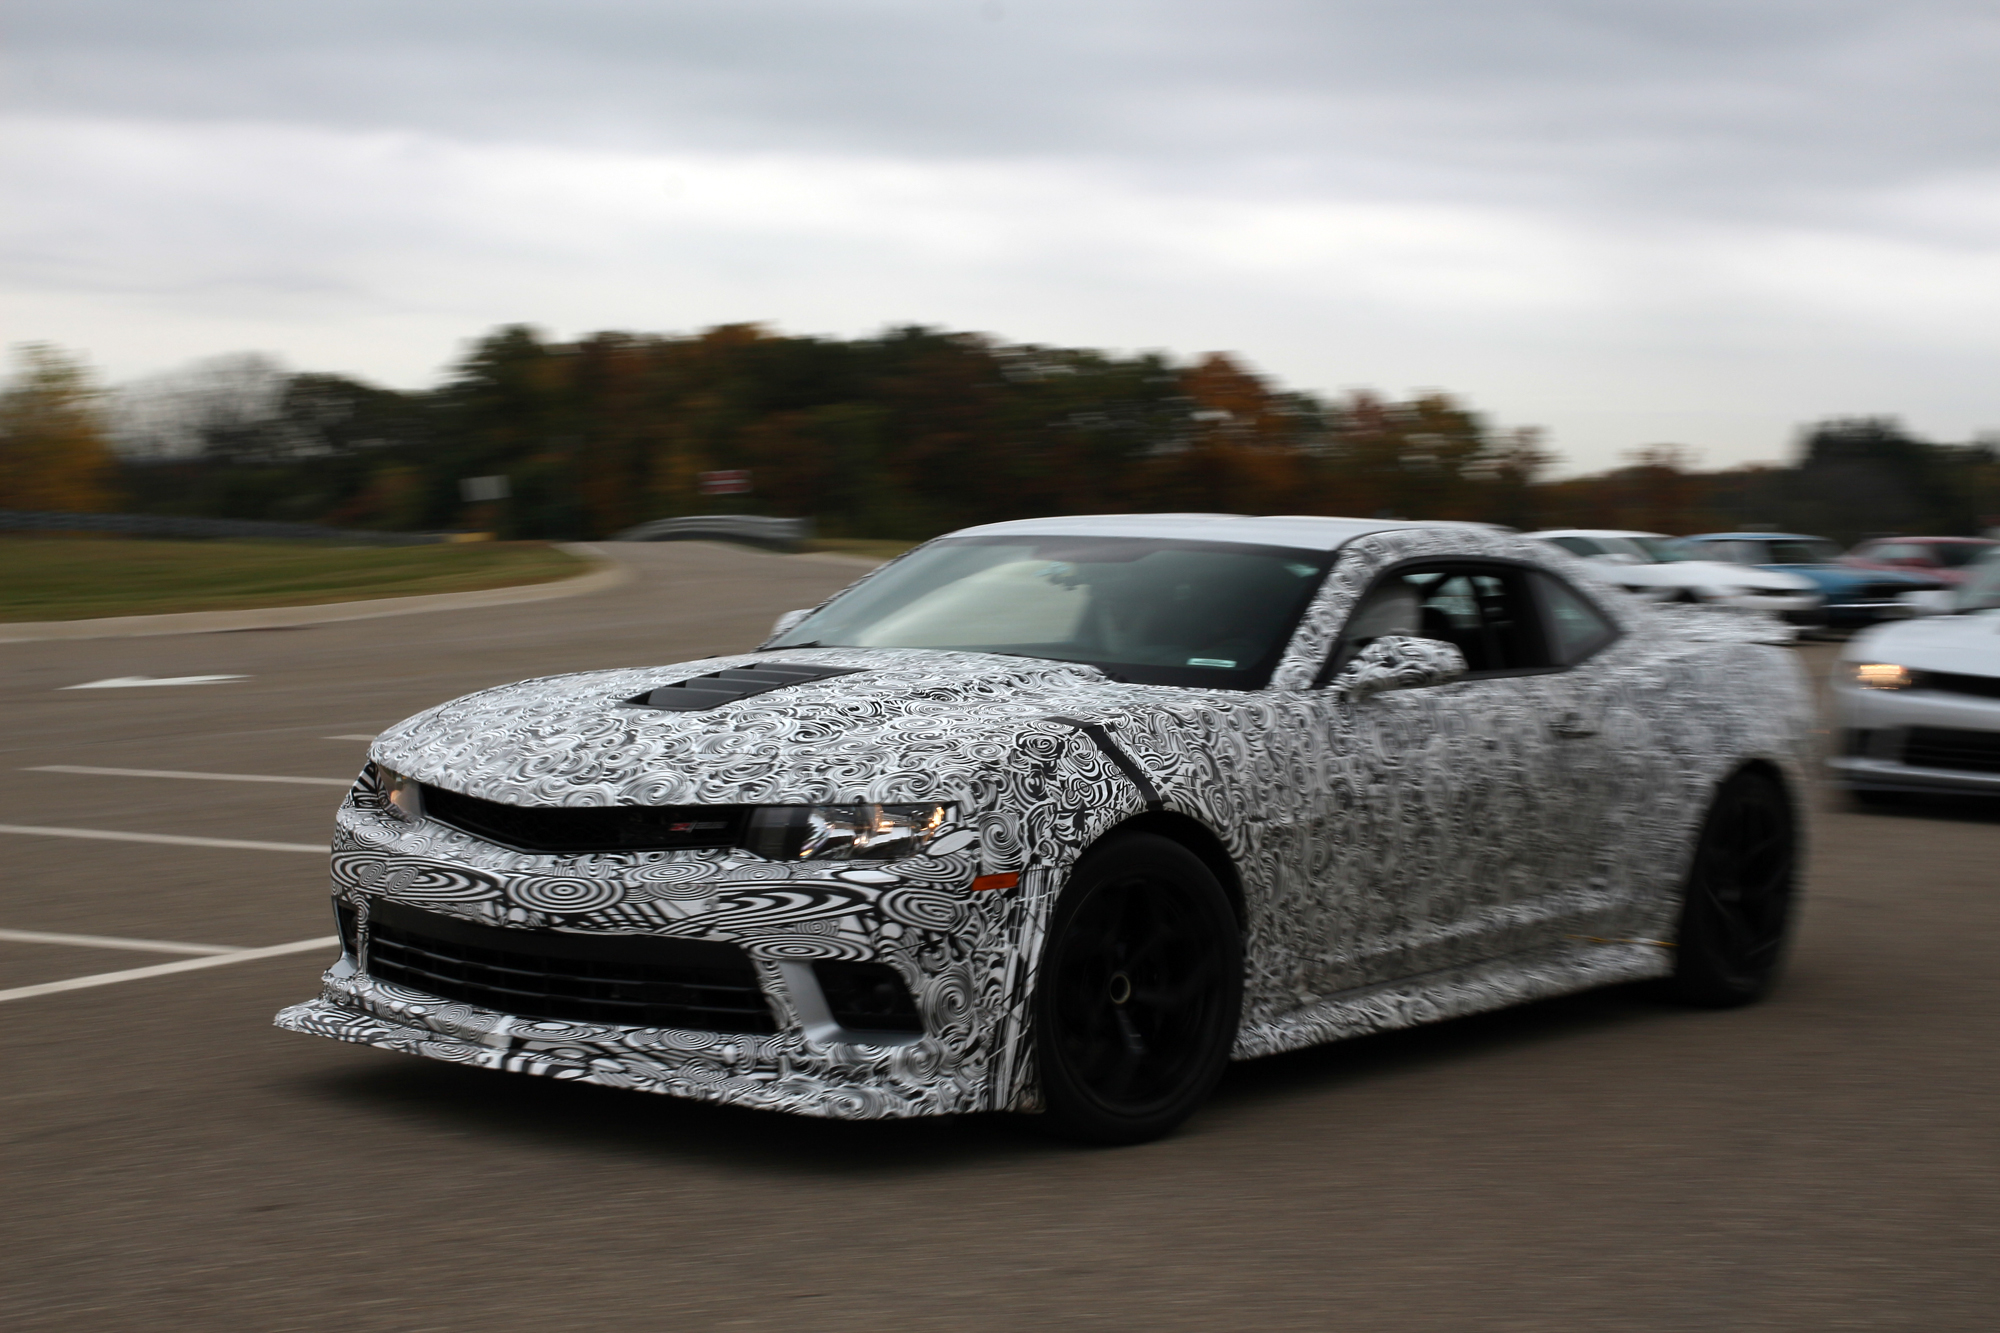 2014 chevrolet camaro z 28 is the real track focused deal first ride page 2. Black Bedroom Furniture Sets. Home Design Ideas